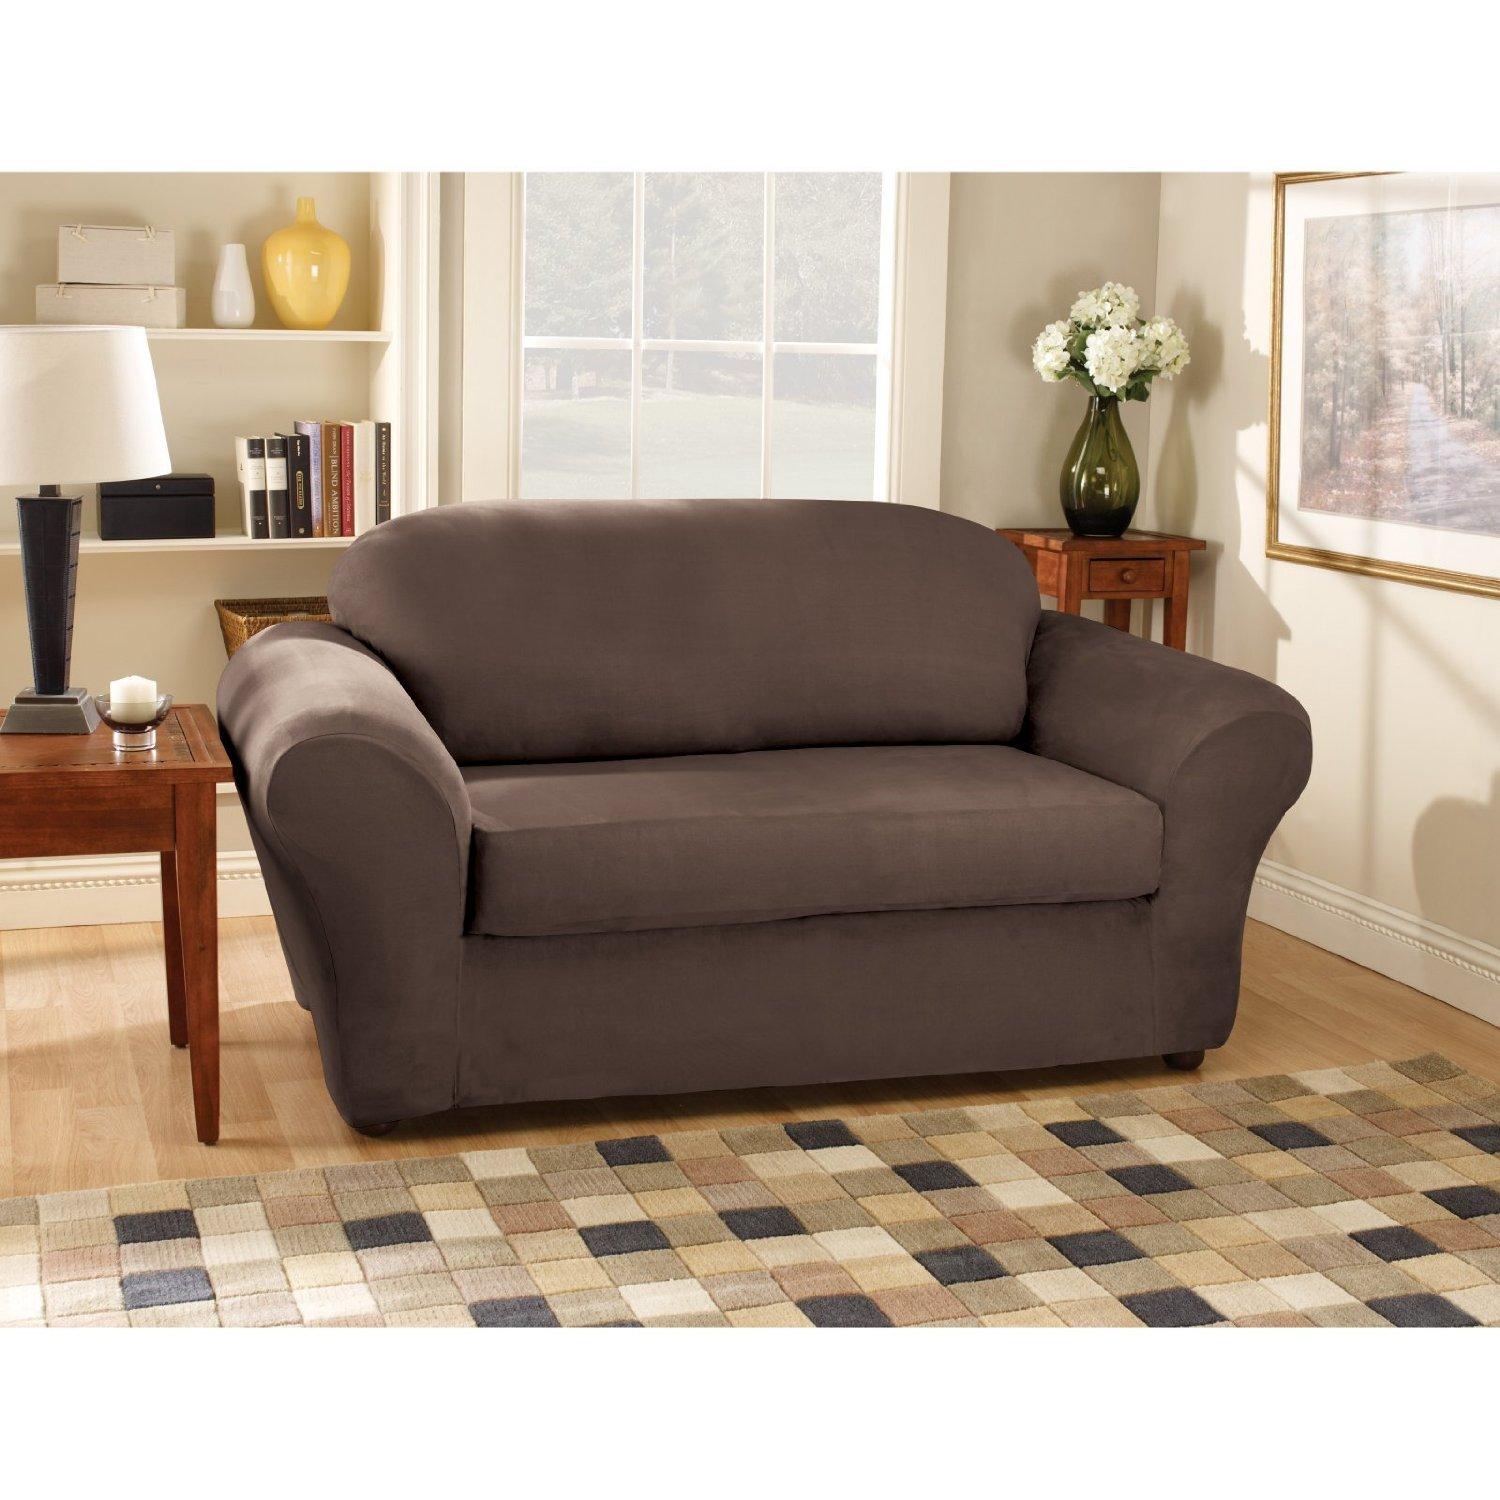 Where to buy couch covers cheap and stylish couch sofa ideas interior design Loveseat slipcovers cheap